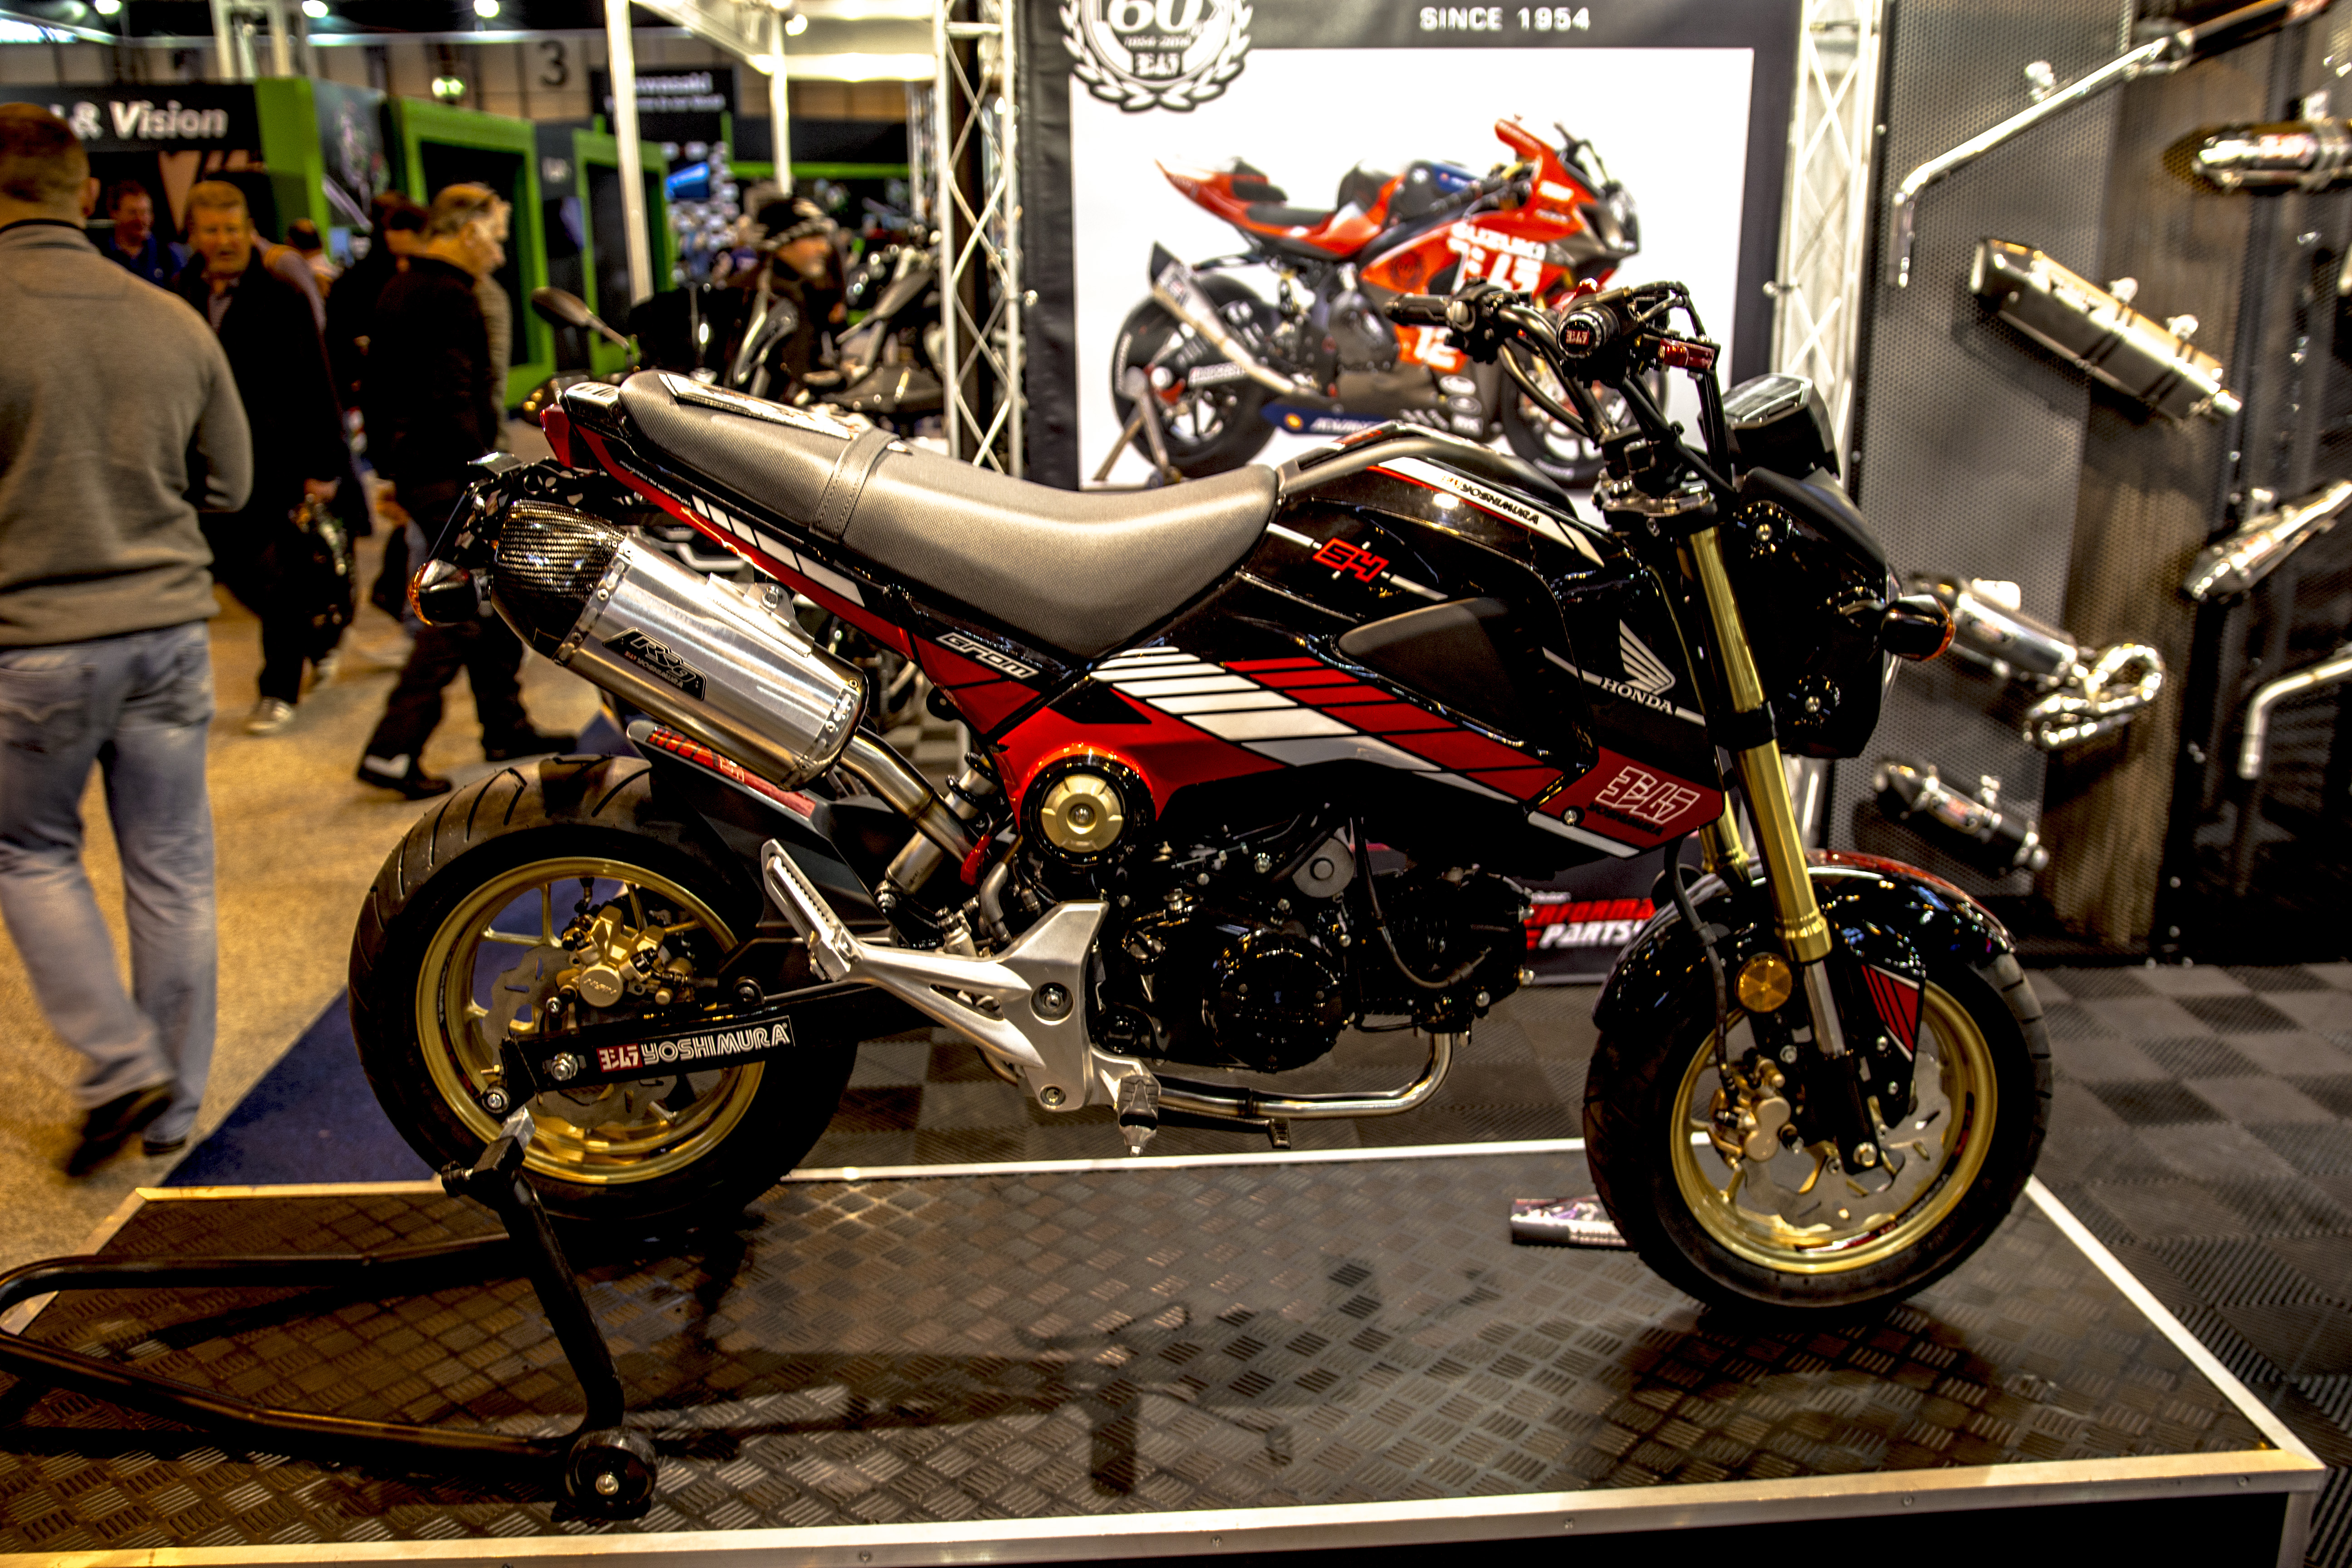 file honda grom 125 at birmingham wikimedia commons. Black Bedroom Furniture Sets. Home Design Ideas